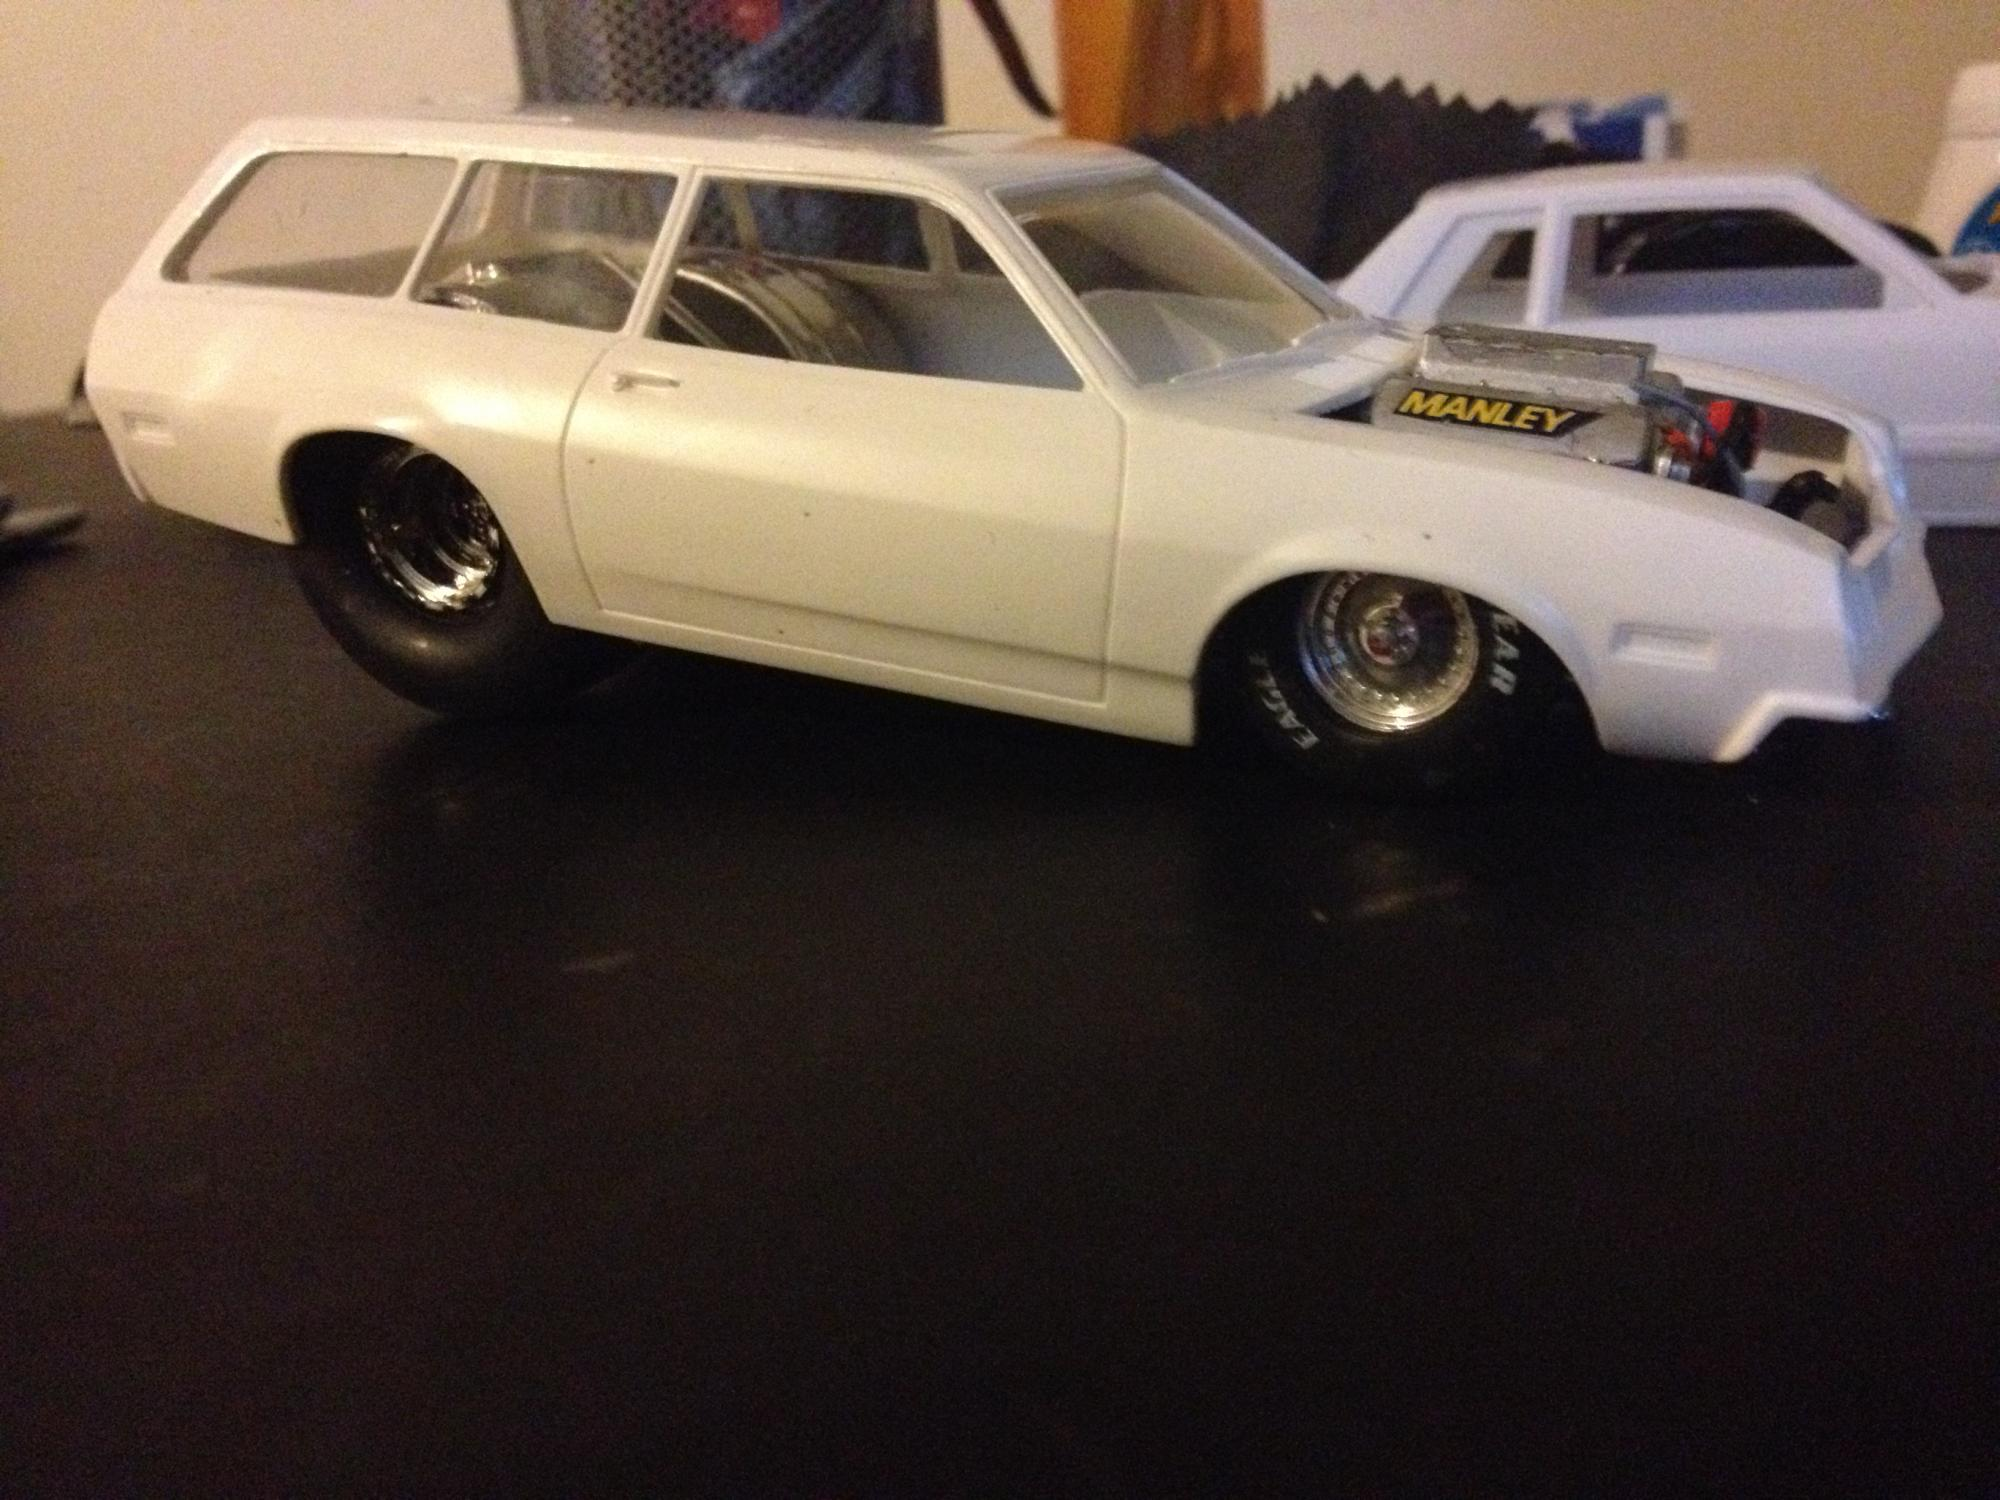 Attempting to build a Pinto Wagon,drag car - On The Workbench ...